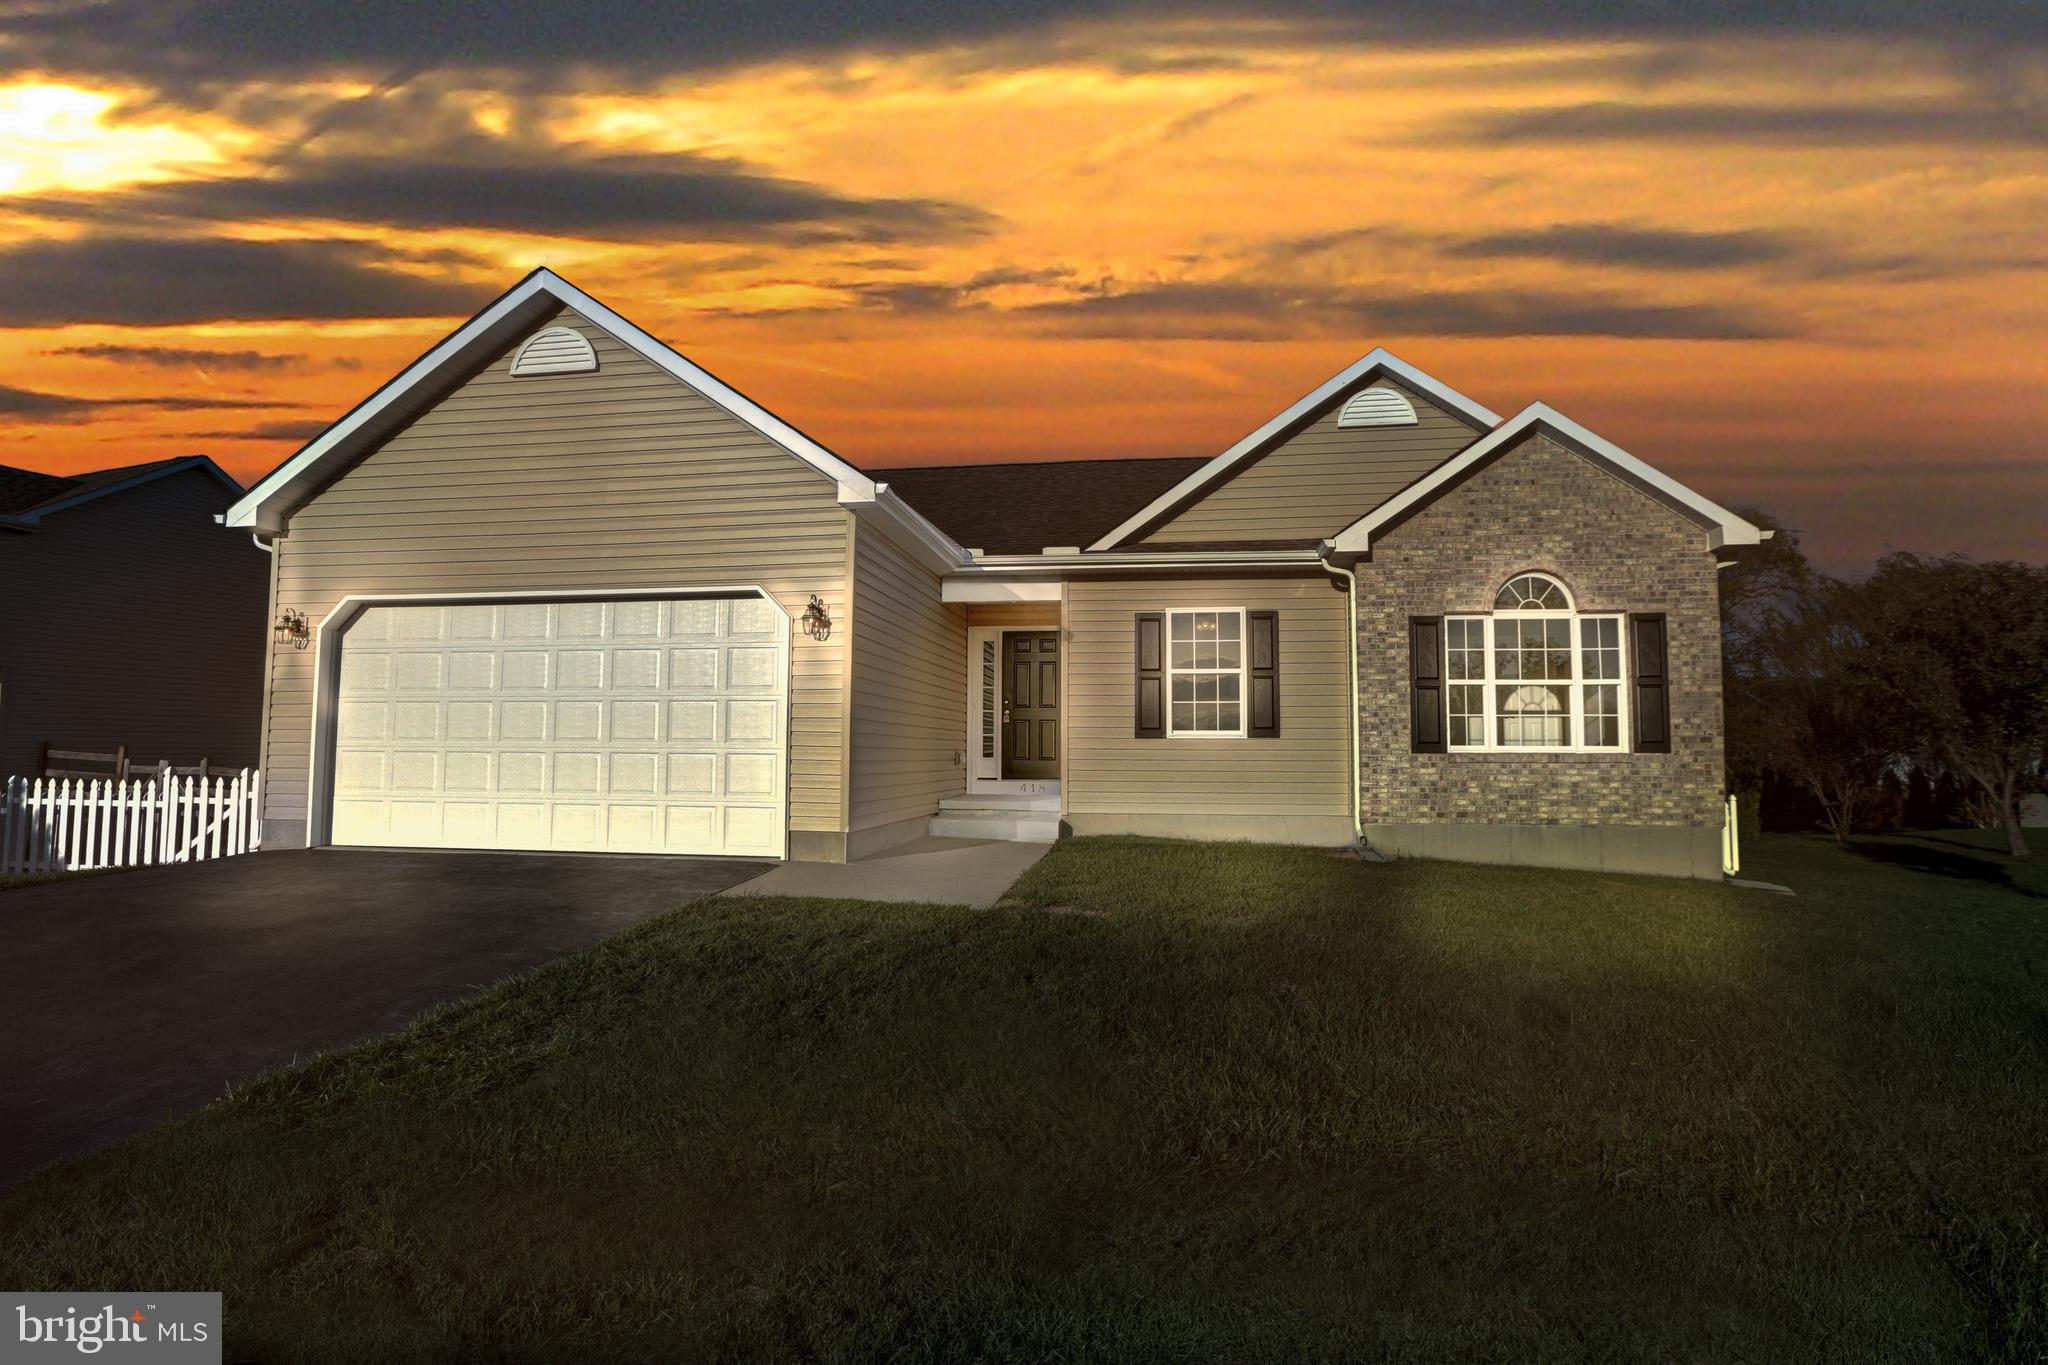 Looking for a brand new single family home in the Appoquinimink School district for under 300? How about one that's a newly constructed ranch-style home with brand new EVERYTHING, move-in ready, and minutes from downtown shopping and restaurants? This is the once-in-a-blue-moon listing that meets all the criteria! Starting from the outside you'll appreciate a nice size lot with a fenced yard- suitable for kids or dogs. Once you're inside we're certain you'll love the open floor plan, freshly painted neutral walls, and brand new low maintenance vinyl-plank flooring. The family room is located right off the gorgeous kitchen and breakfast room- which has a sliding glass door providing access to the backyard. The wall in the kitchen was completely removed to allow for a very open concept floor plan.  Head down the hall and you'll find 3 spacious bedrooms with brand new carpeting, 2 full bathrooms, and the laundry. The master suite has it's own private en suite bathroom with a large frameless shower, plus a large walk-in closet! The kitchen has brand new granite countertops, brand new white cabinetry, brand new stainless steel appliances and is open-concept to the family room! And finally- the full basement offers plenty of space for storage, recreation & any additions you'd like! Come check out this beautiful new home today before its grabbed up!